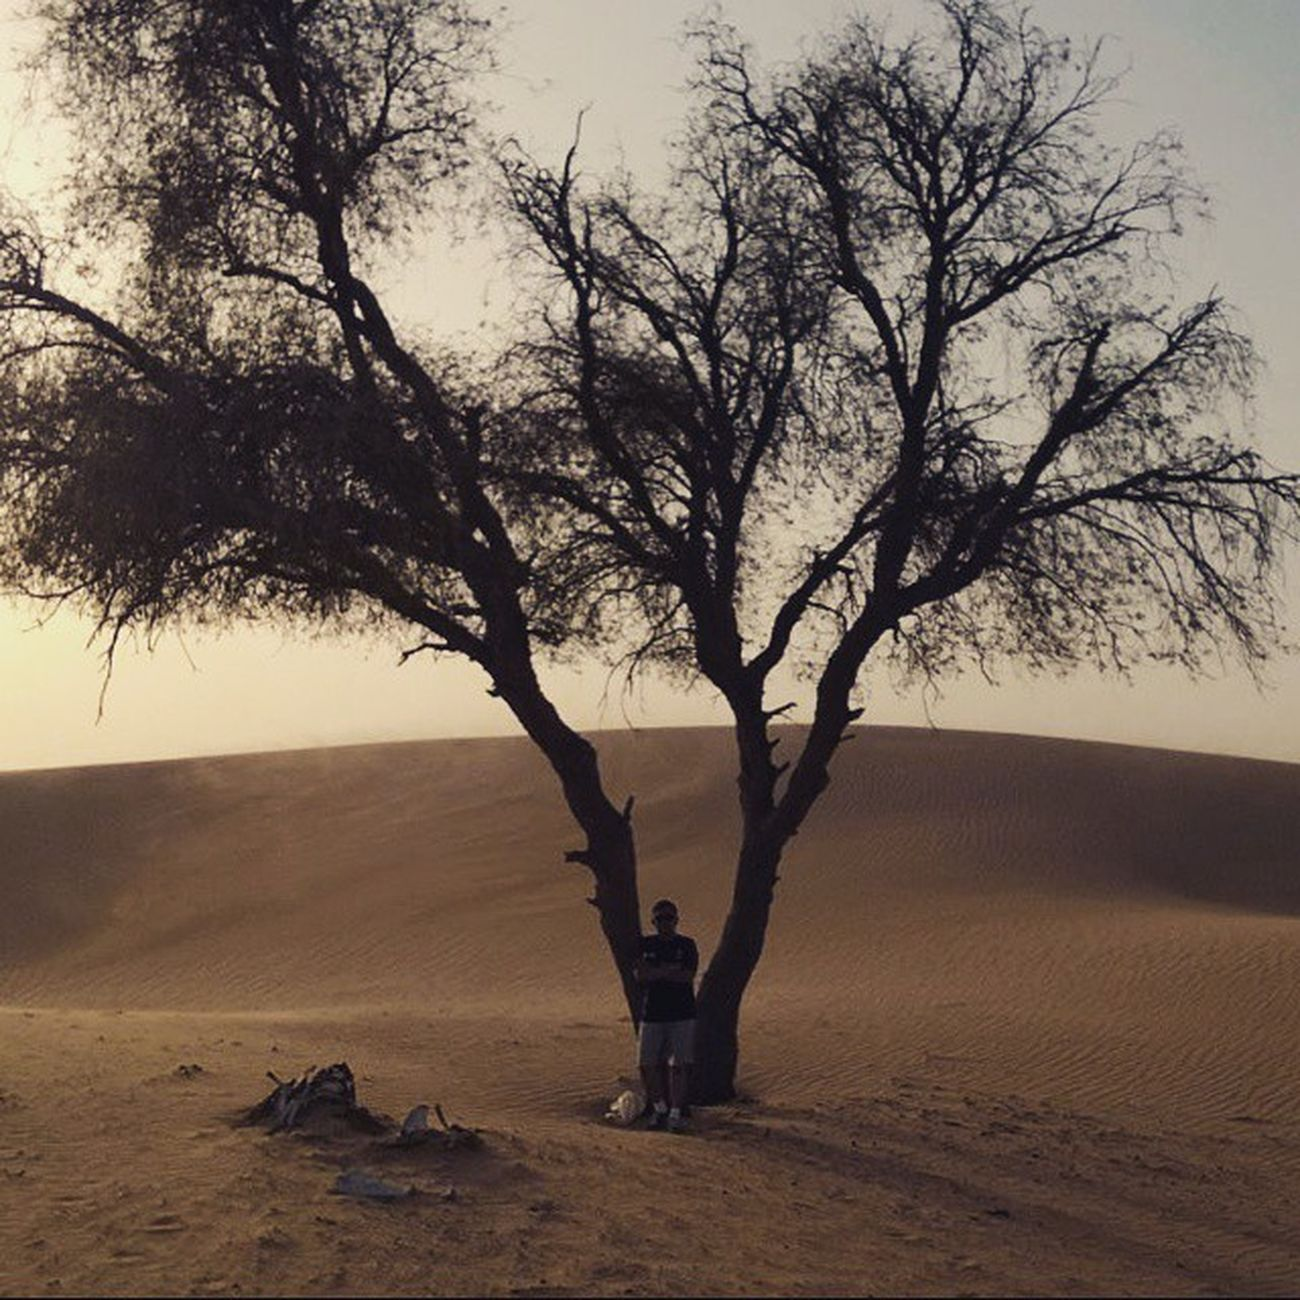 Somewhere on the desert.. Desert Desertour Sand Abudhabidesert Sunset Sunshine Tree Bluesky Hotday Hotweather Tourist Tour Tourist Trip Mytrip Abudhabi UAE Unitedarabemirates Instaandroid Instadroid The Great Outdoors - 2016 EyeEm Awards